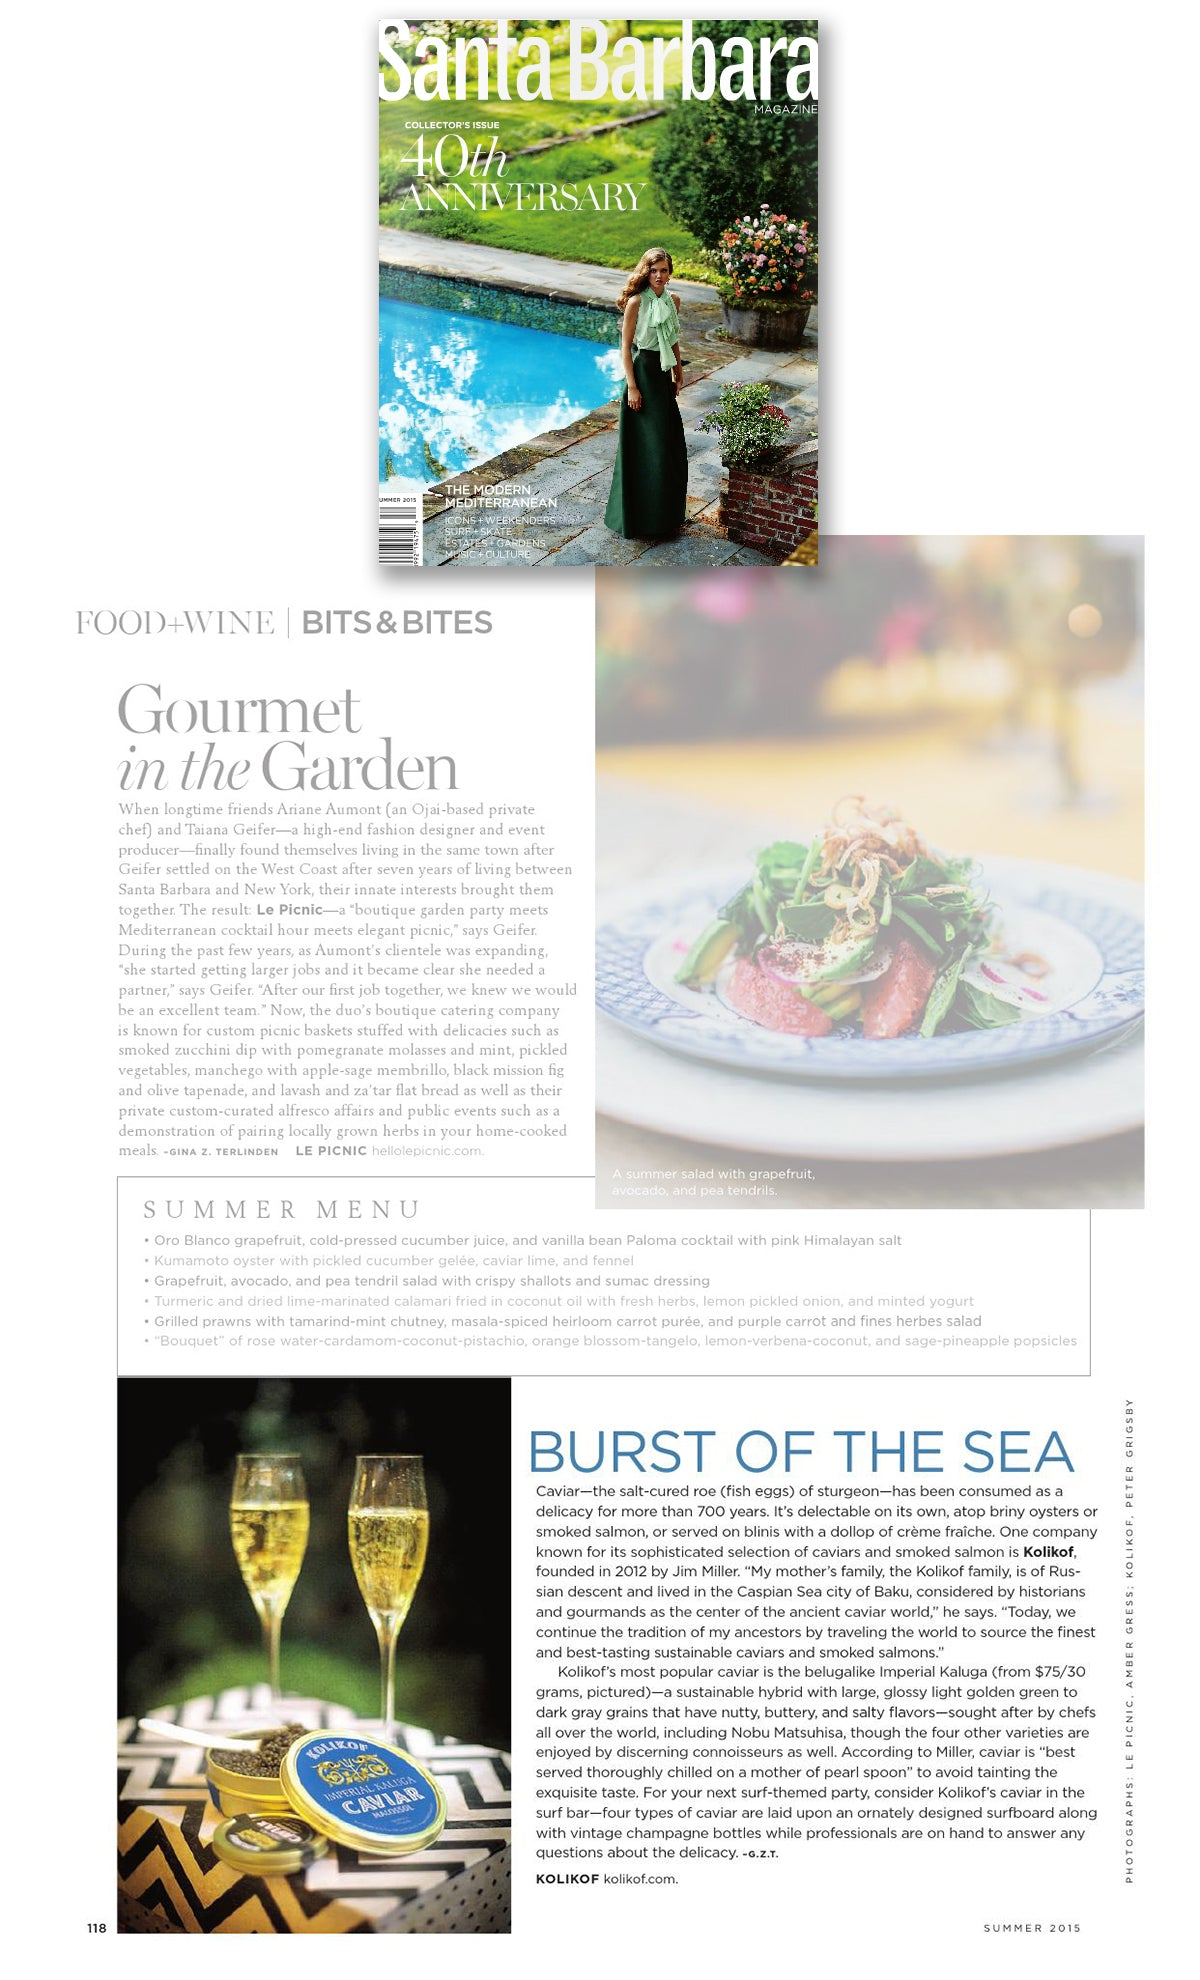 Kolikof Caviar and Fine Foods as seen in Santa Barbara Magazine